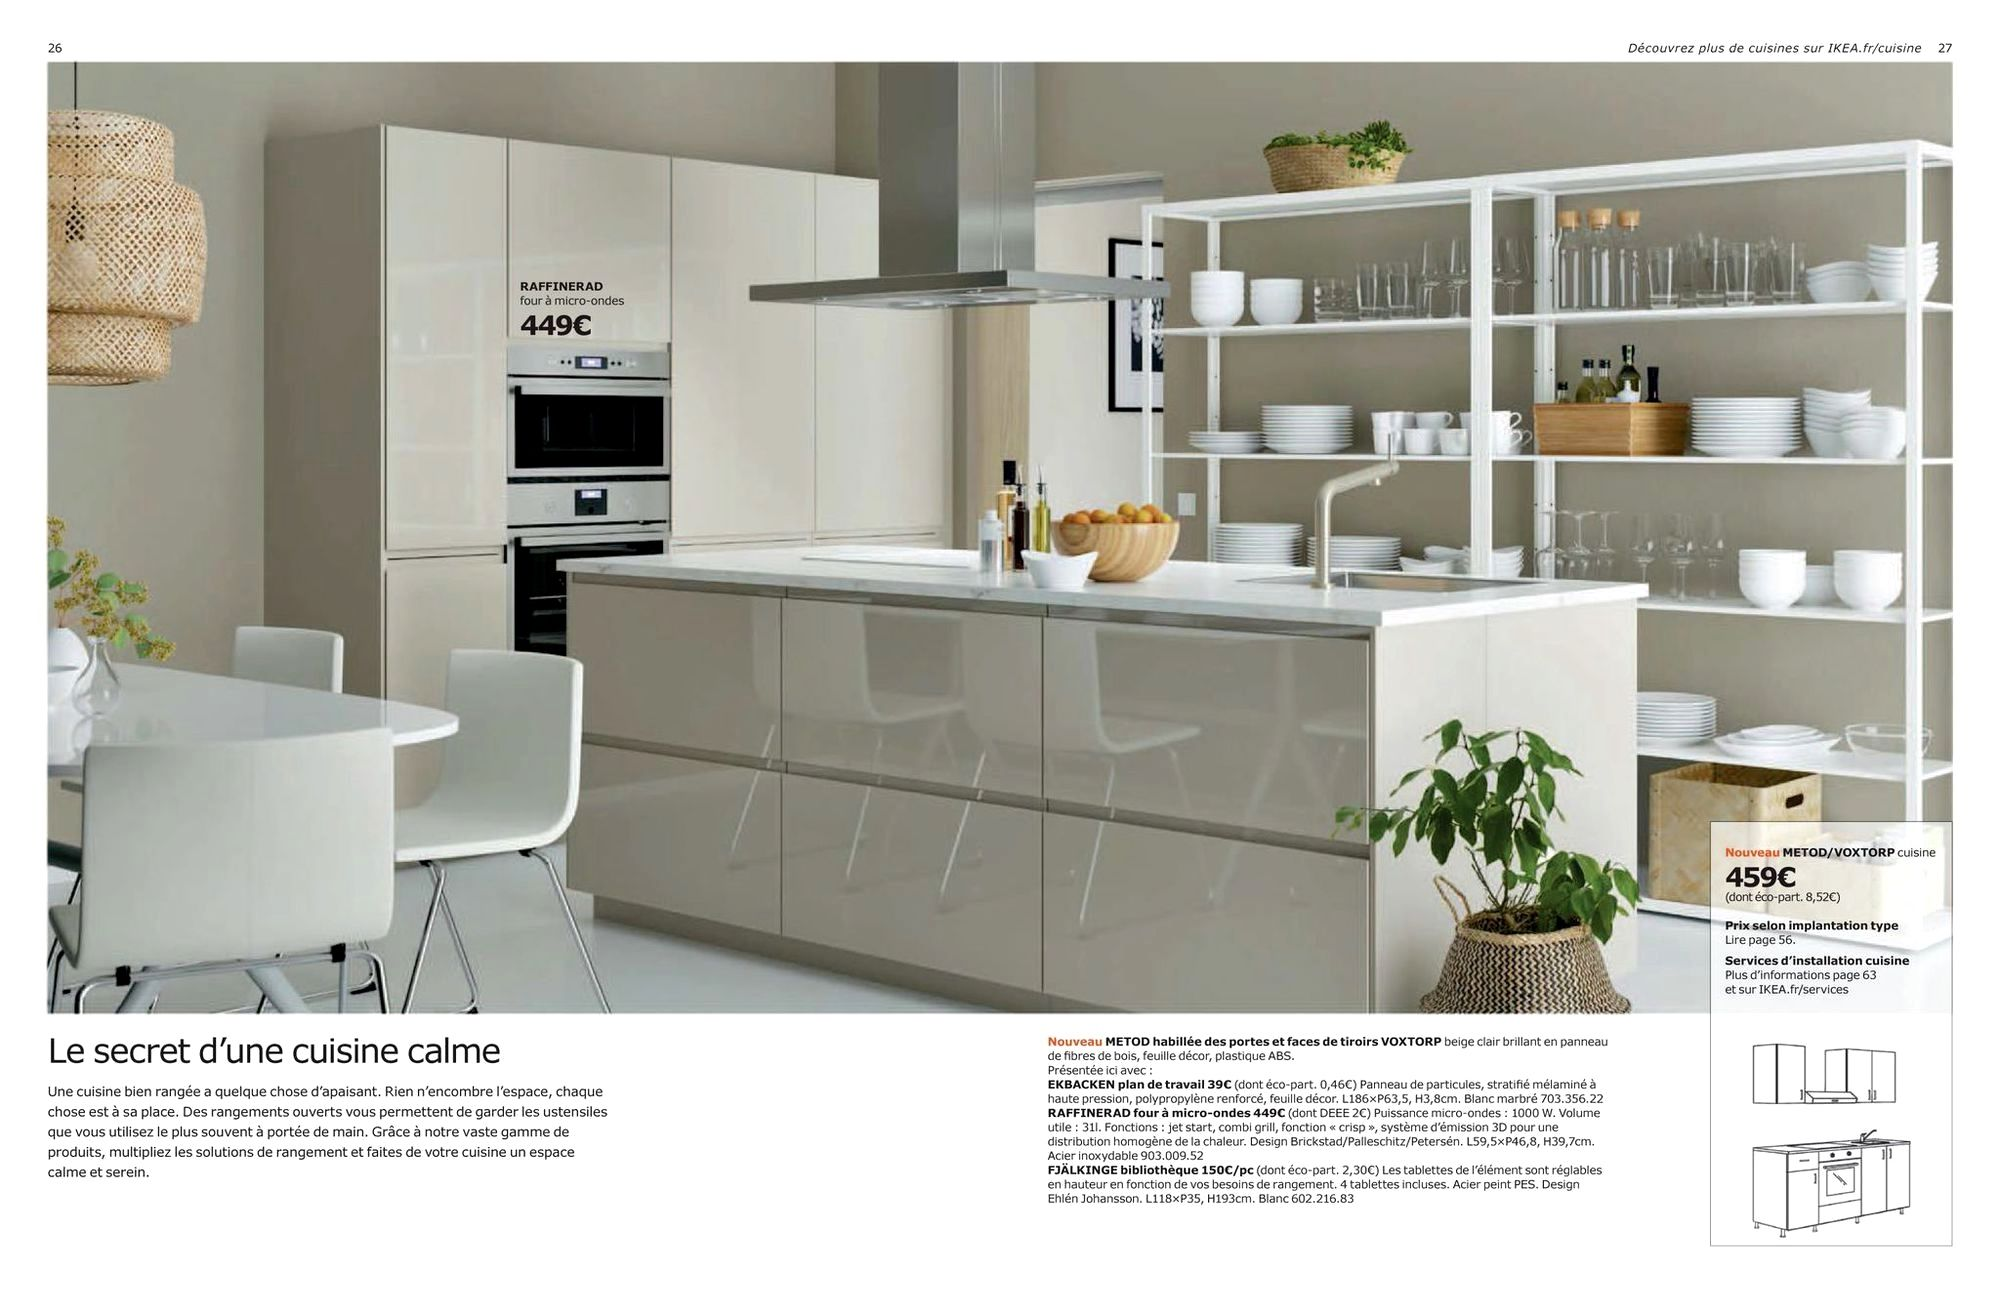 Catalogue Cuisine Ikea 2017 Gallery Check More At Https Hdwallpaperss Com Catalogue Cuisine Ikea 2017 Di 2020